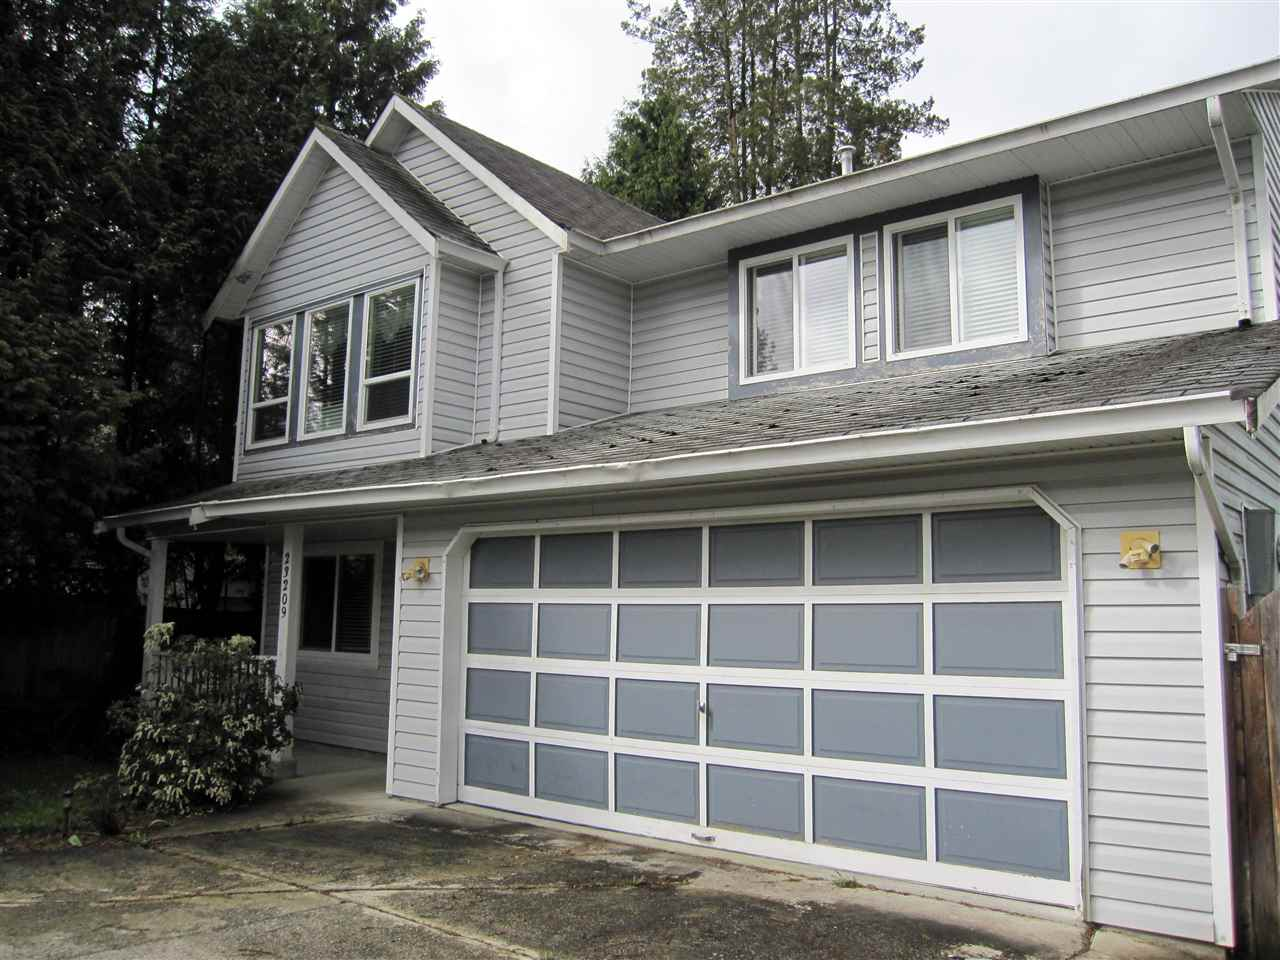 Main Photo: 23209 123 Avenue in Maple Ridge: East Central House for sale : MLS® # R2049127